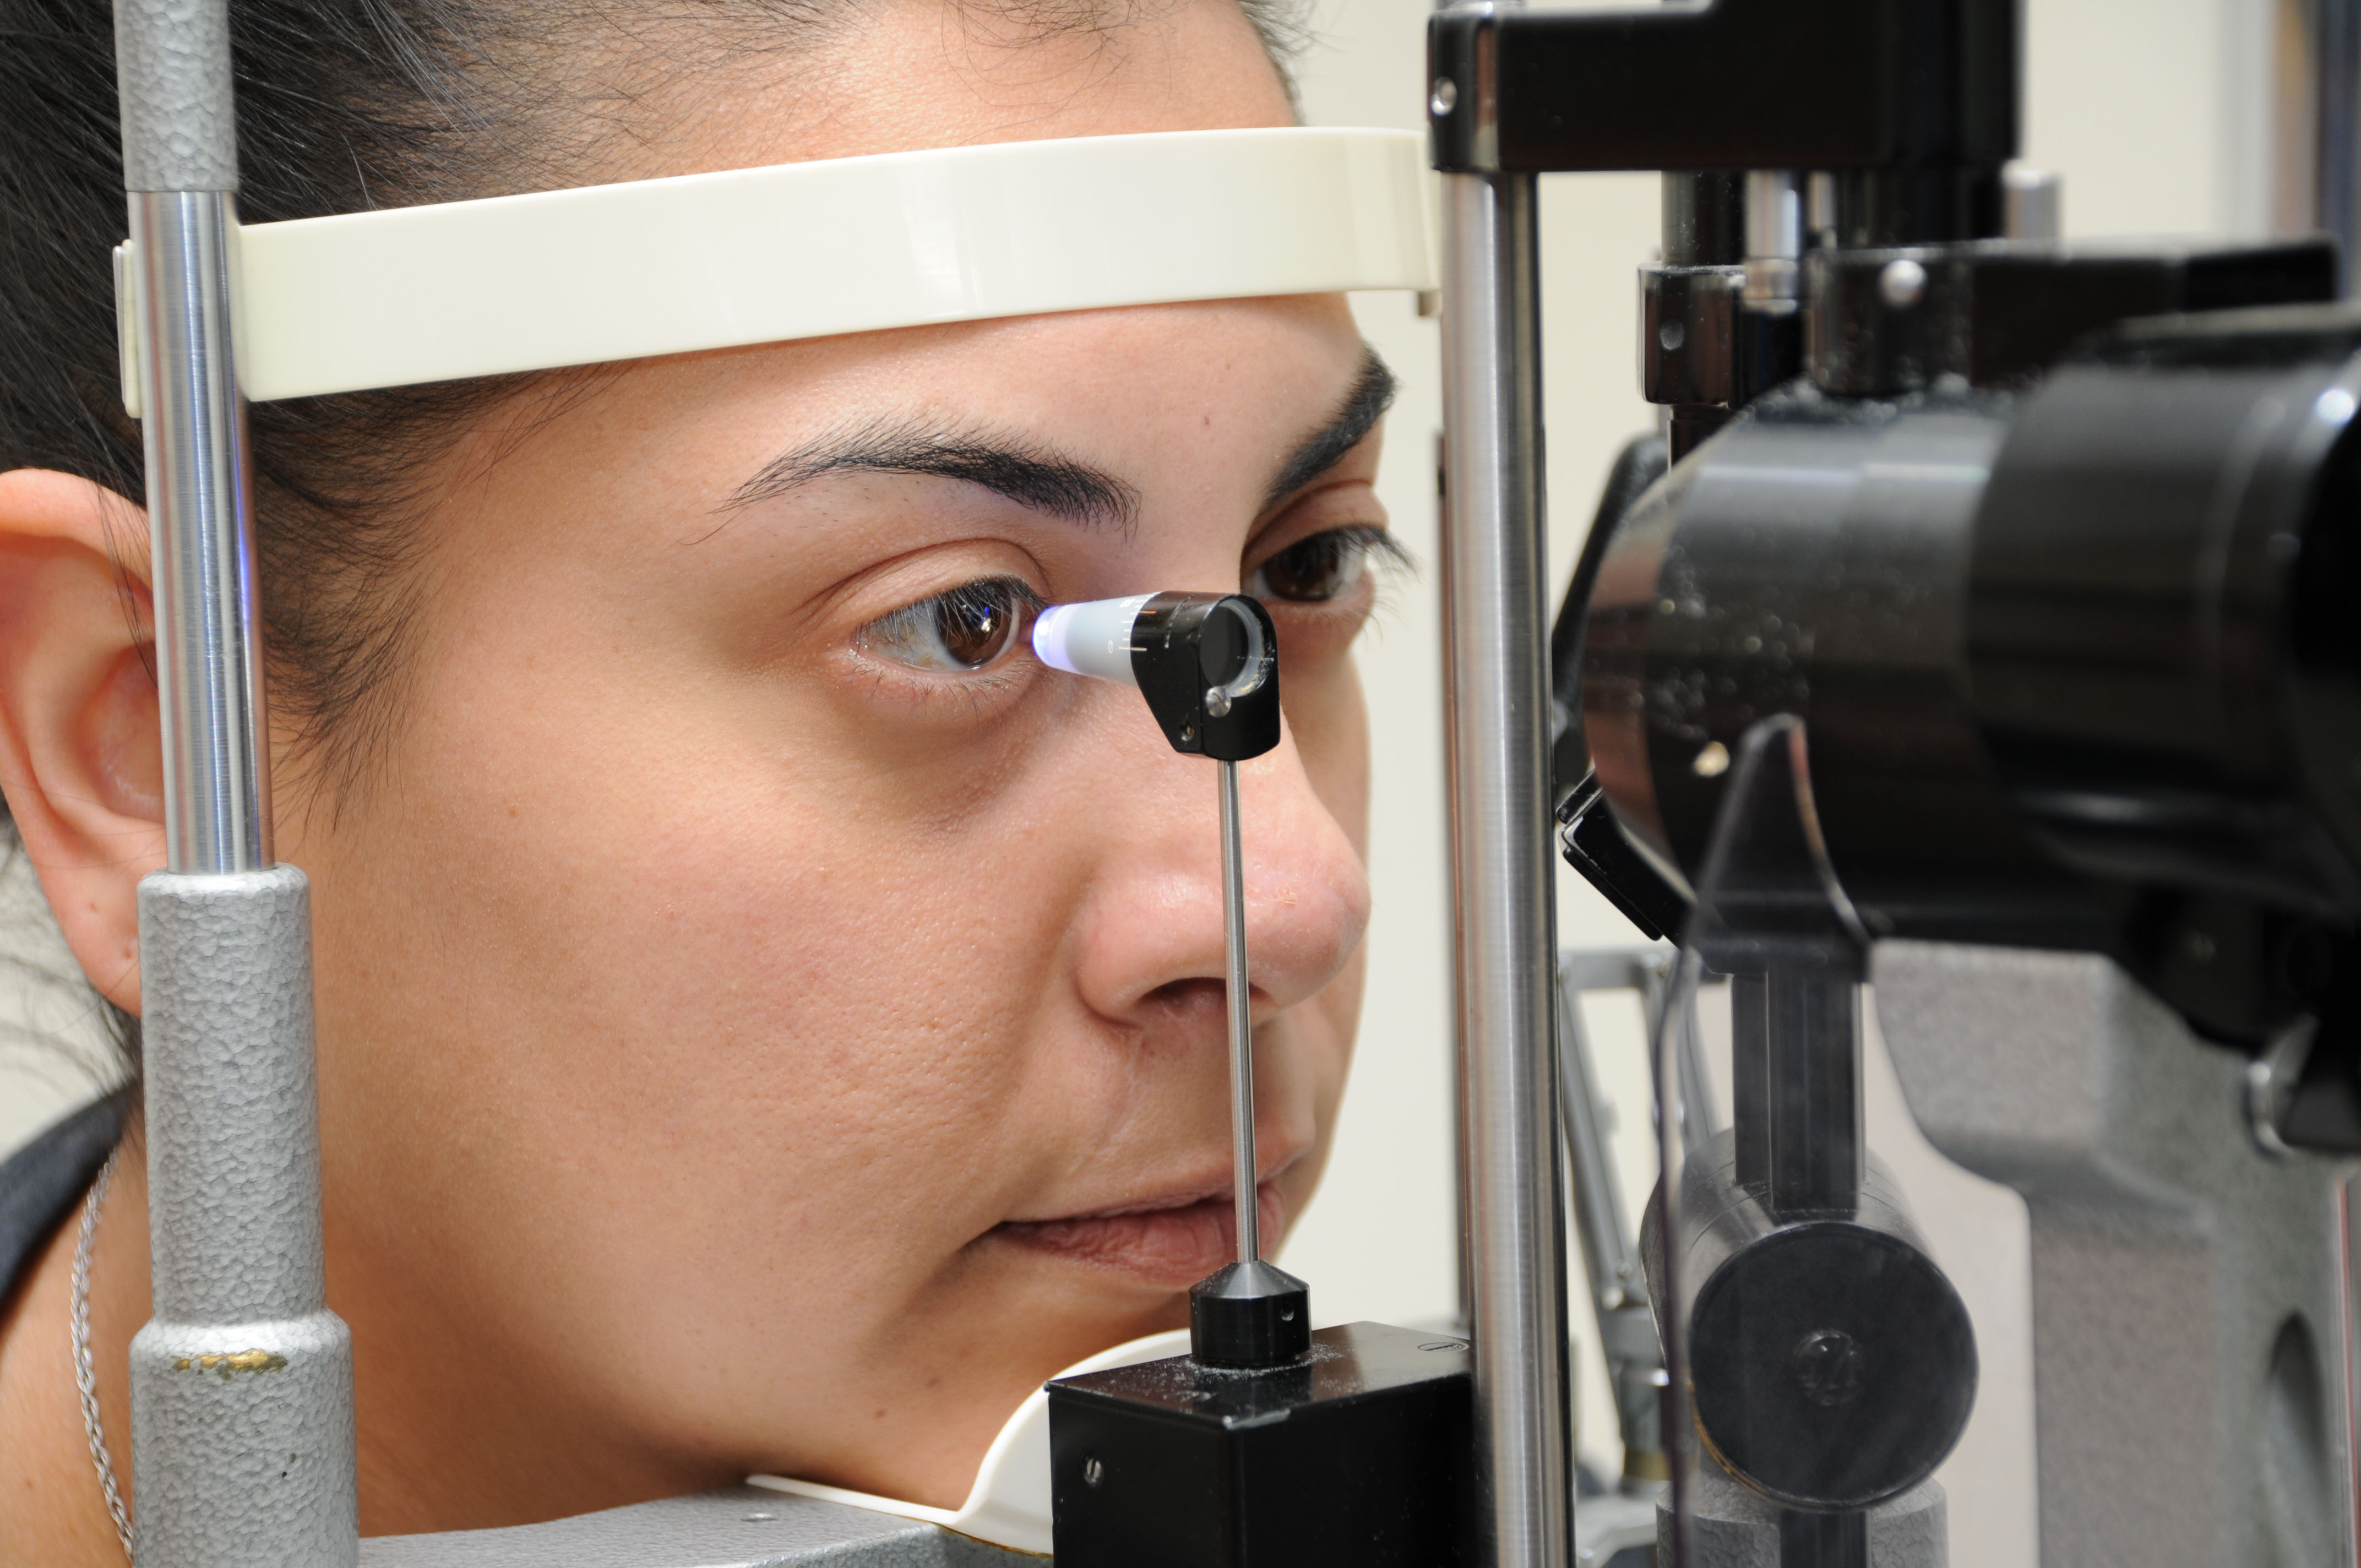 Testing IOP with a Goldmann tonometer. Source: Courtesy Karanjit Kooner MD and William Anderson, photographer, University of Texas Southwestern Medical Center, Dallas